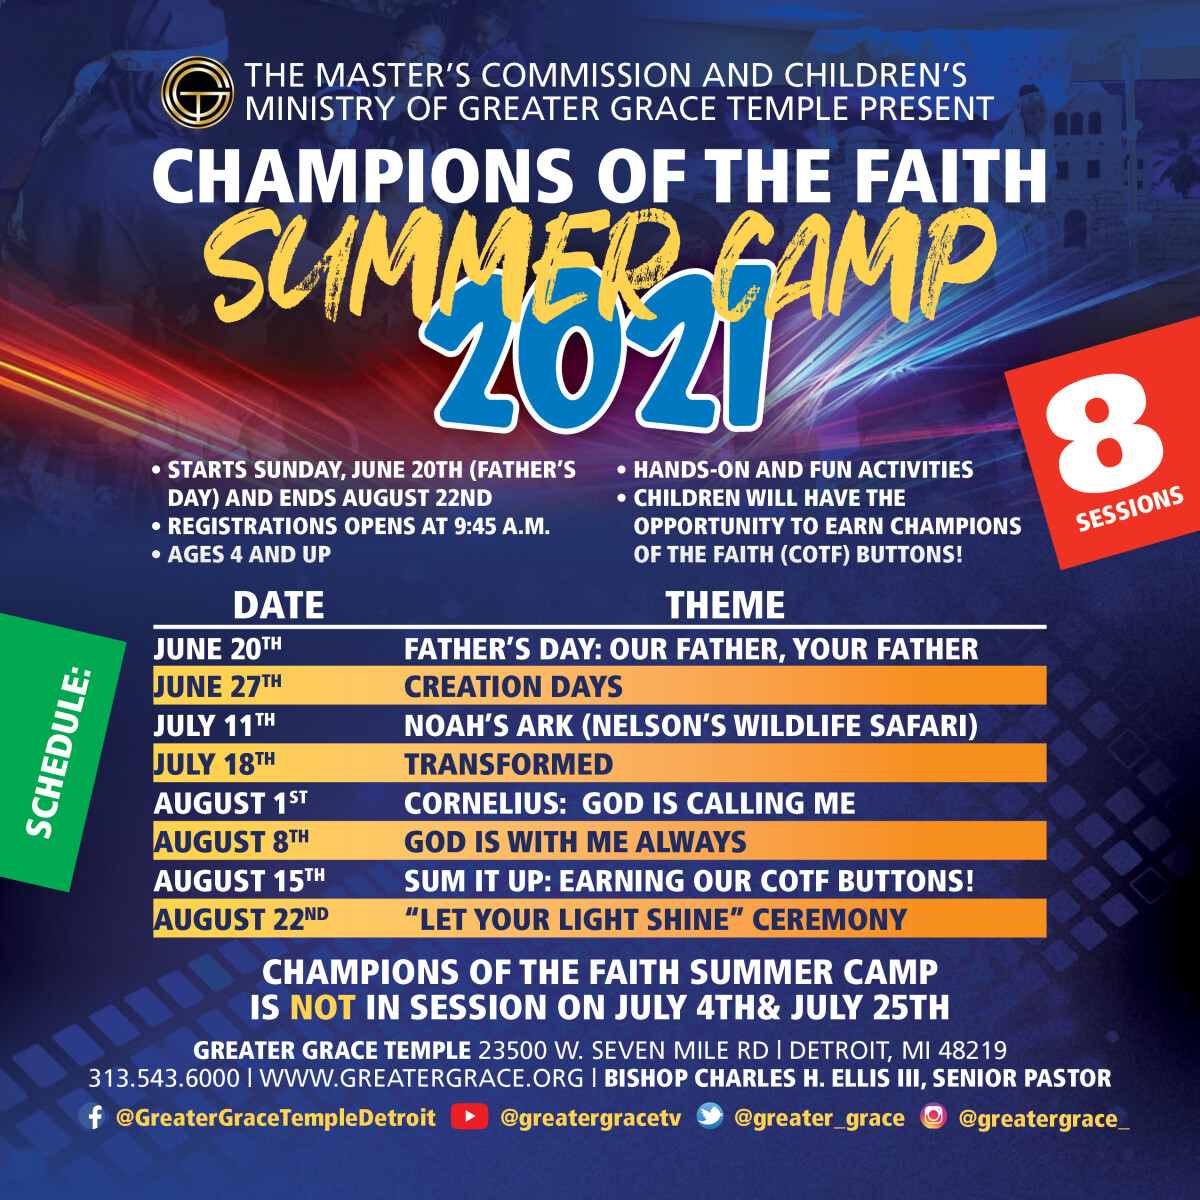 Champions of The Faith Summer Camp